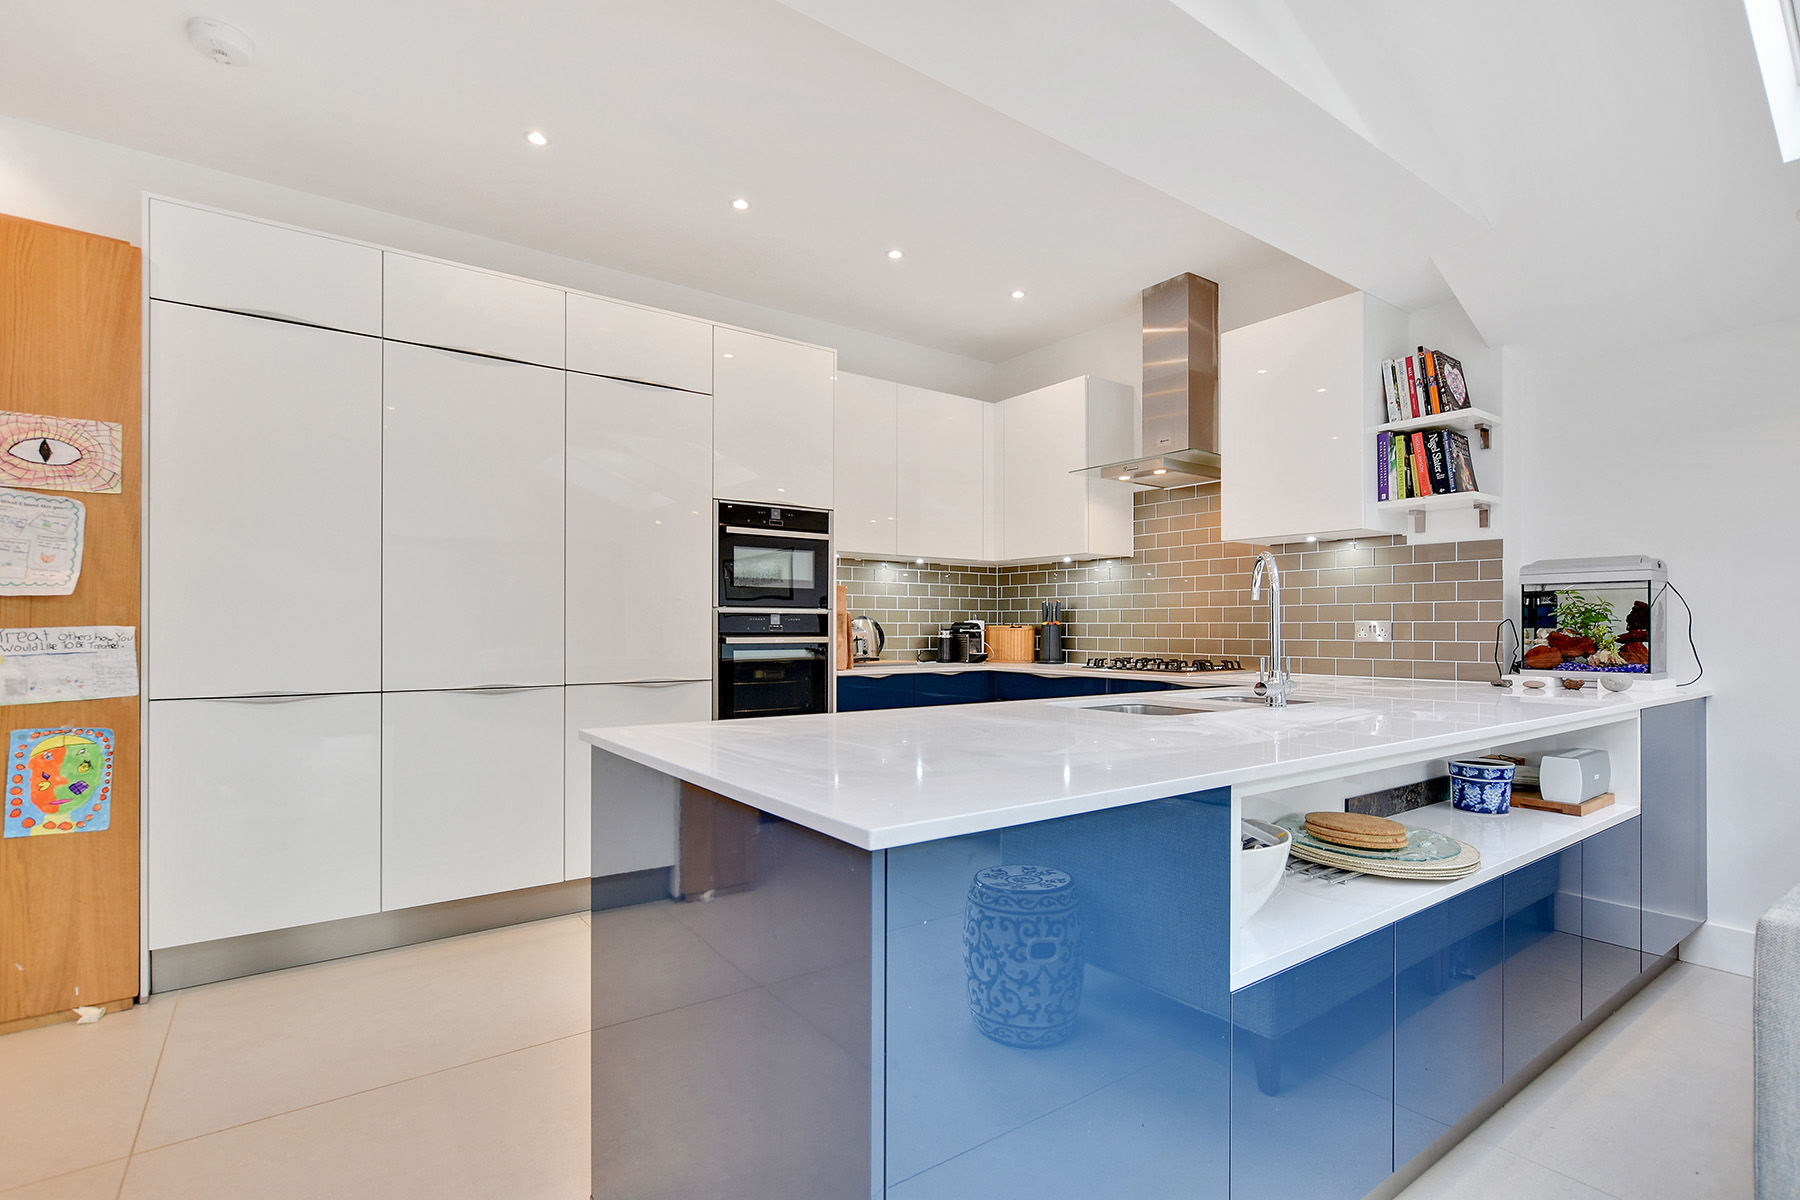 Outstanding Soup Kitchen Gloucester Pattern - Kitchen Cabinets ...